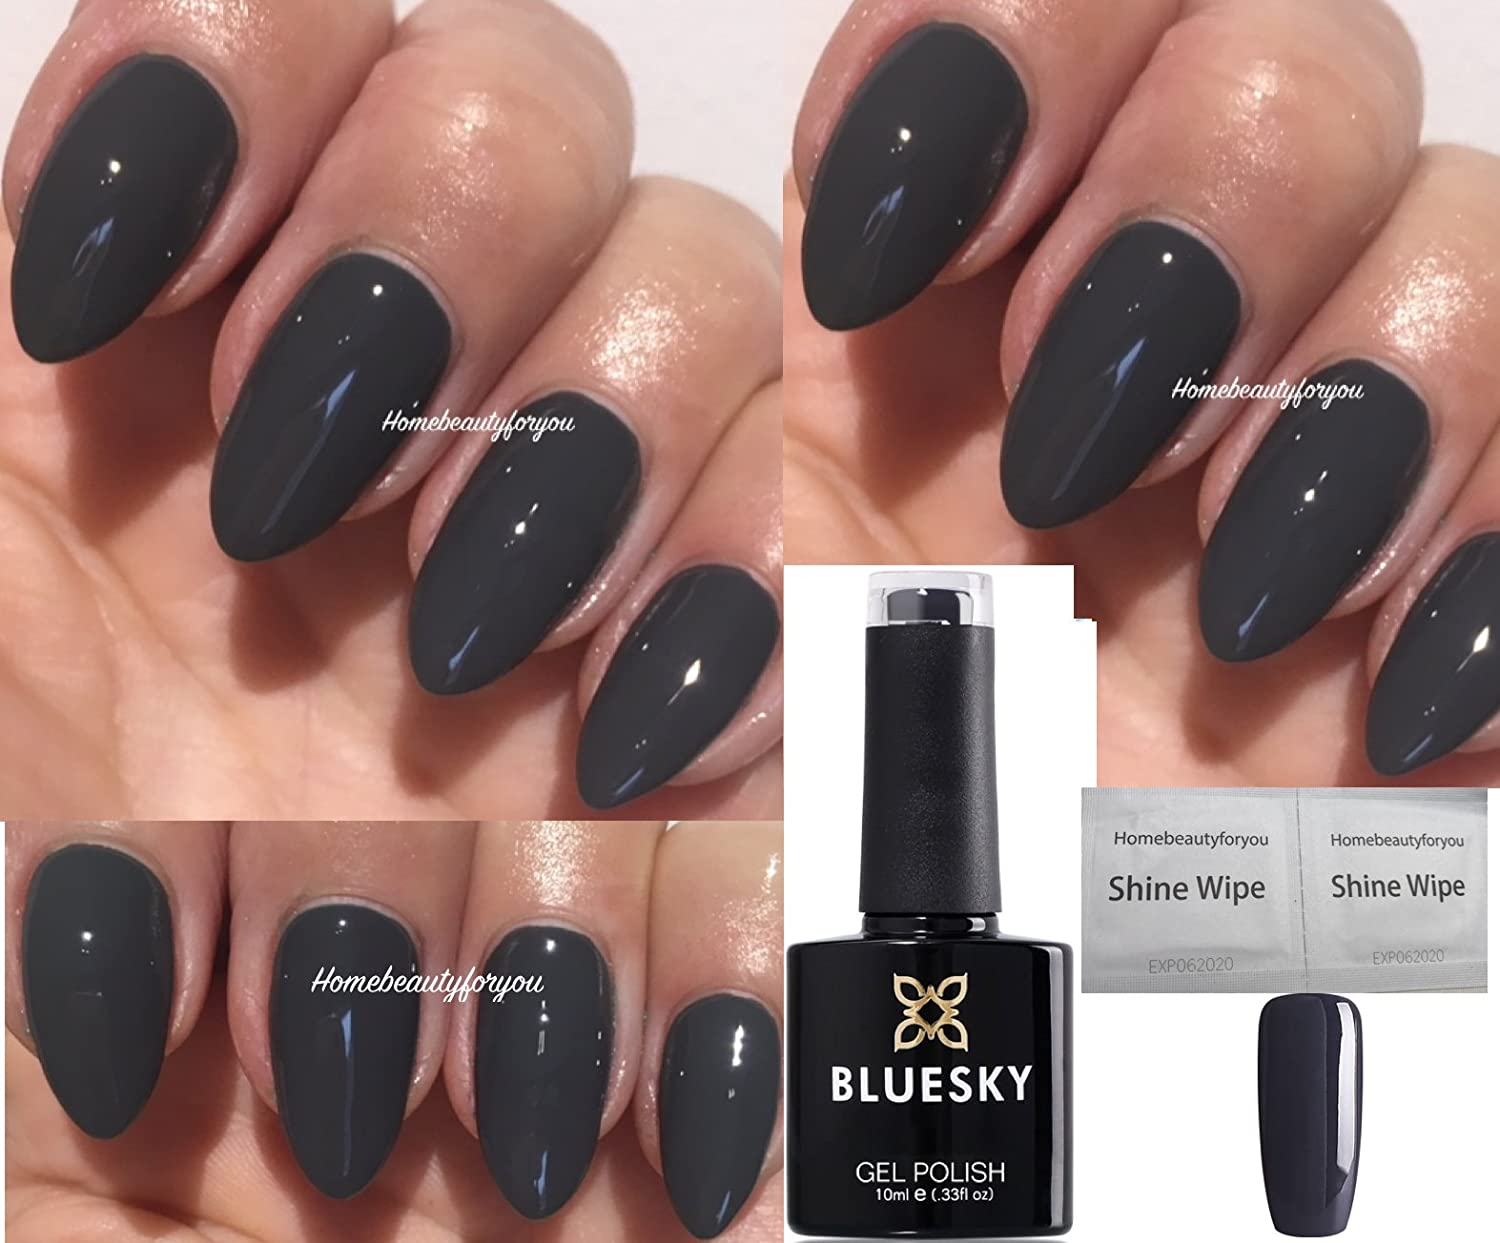 Bluesky 80531 Dark Grey Asphalt Chic Twilight Nail Gel Polish UV LED Soak Off 10ml PLUS 2 Homebeautyforyou Shine Wipes LTD